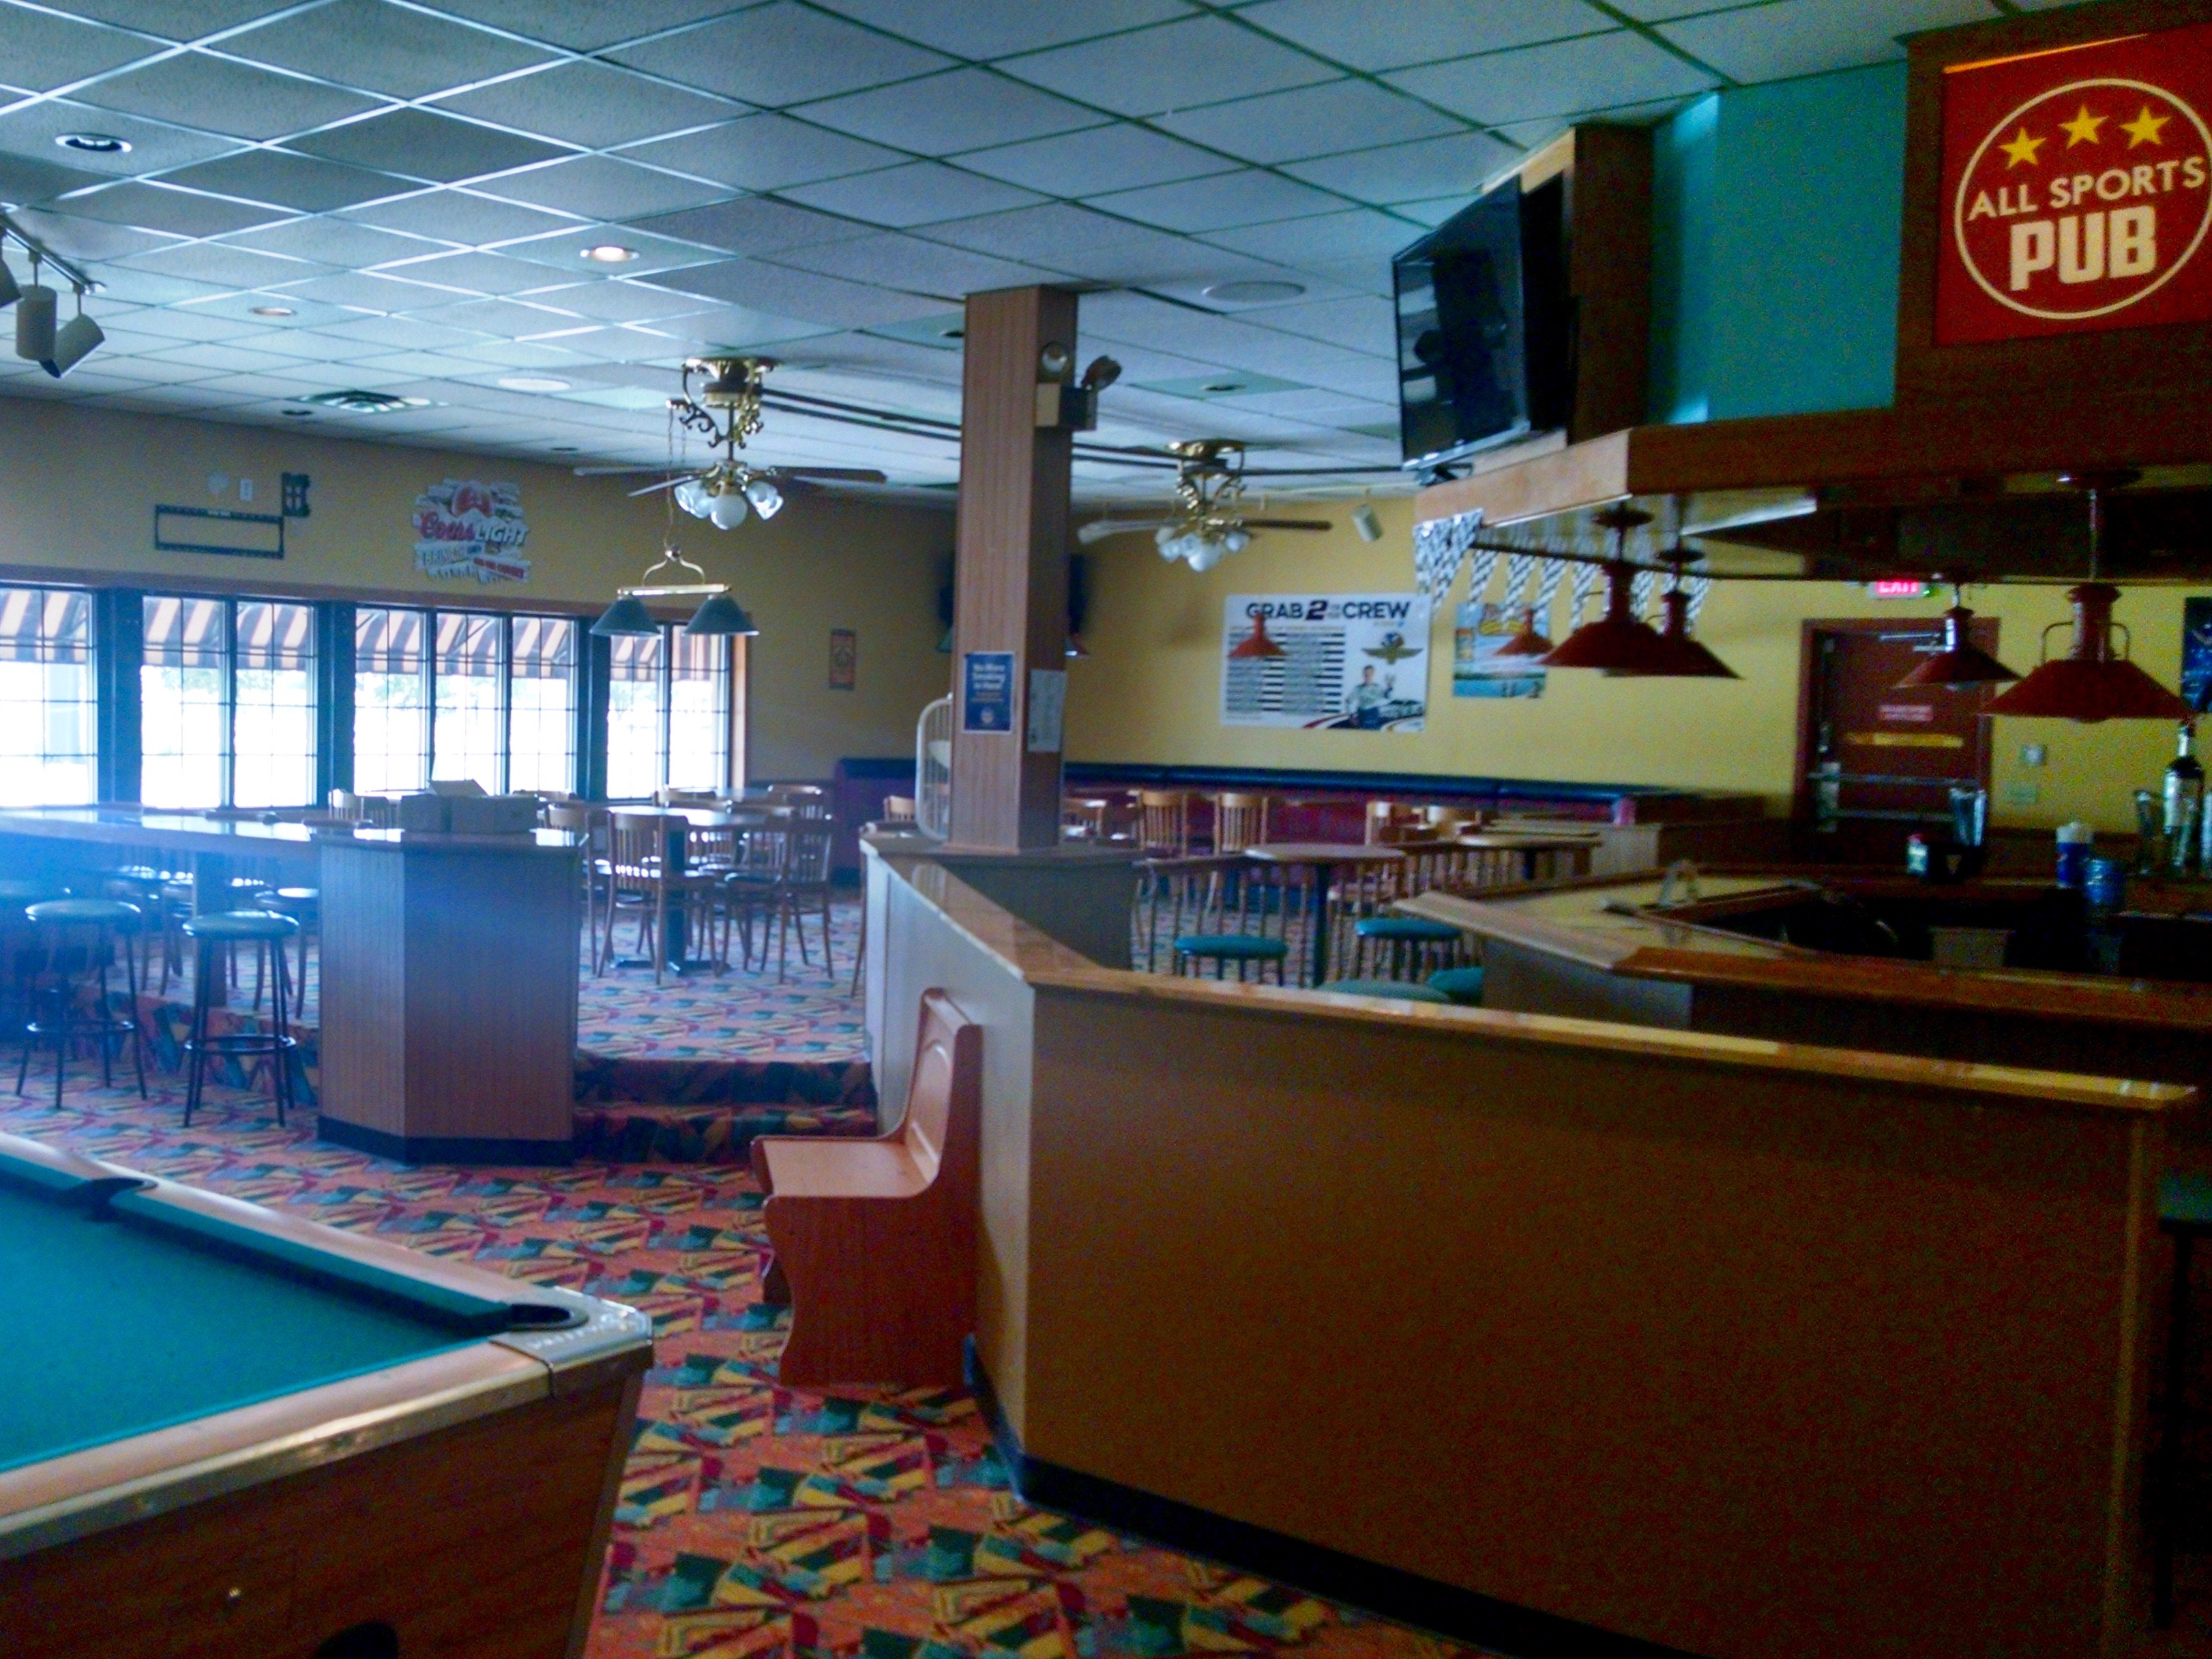 I could spend a lot of time in the All-Sports Pub inside Sunshine Bowling Center!